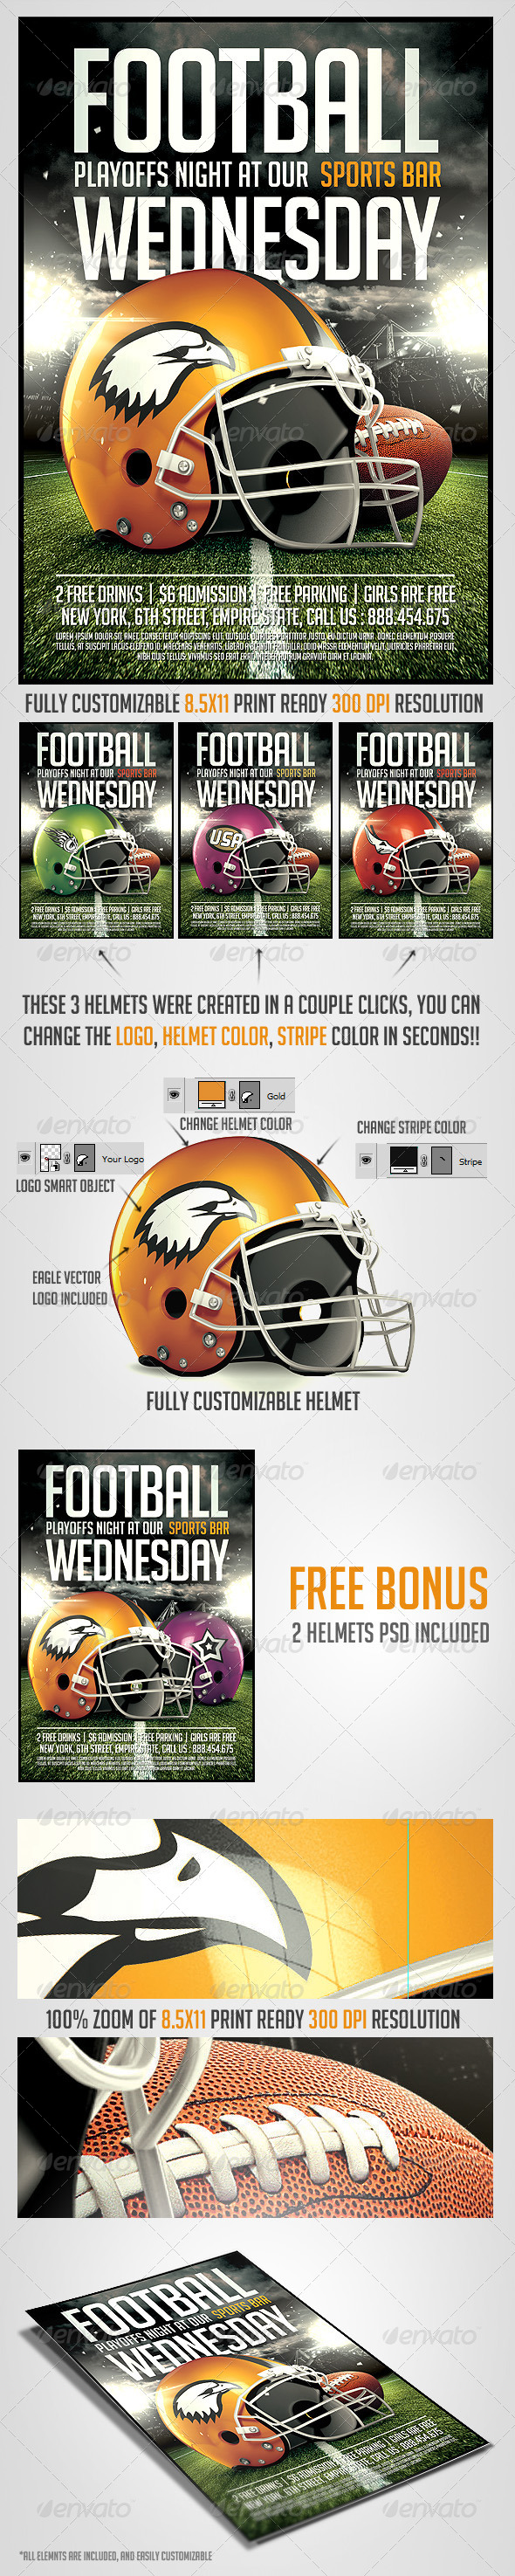 Football Night Flyer Template - Sports Events